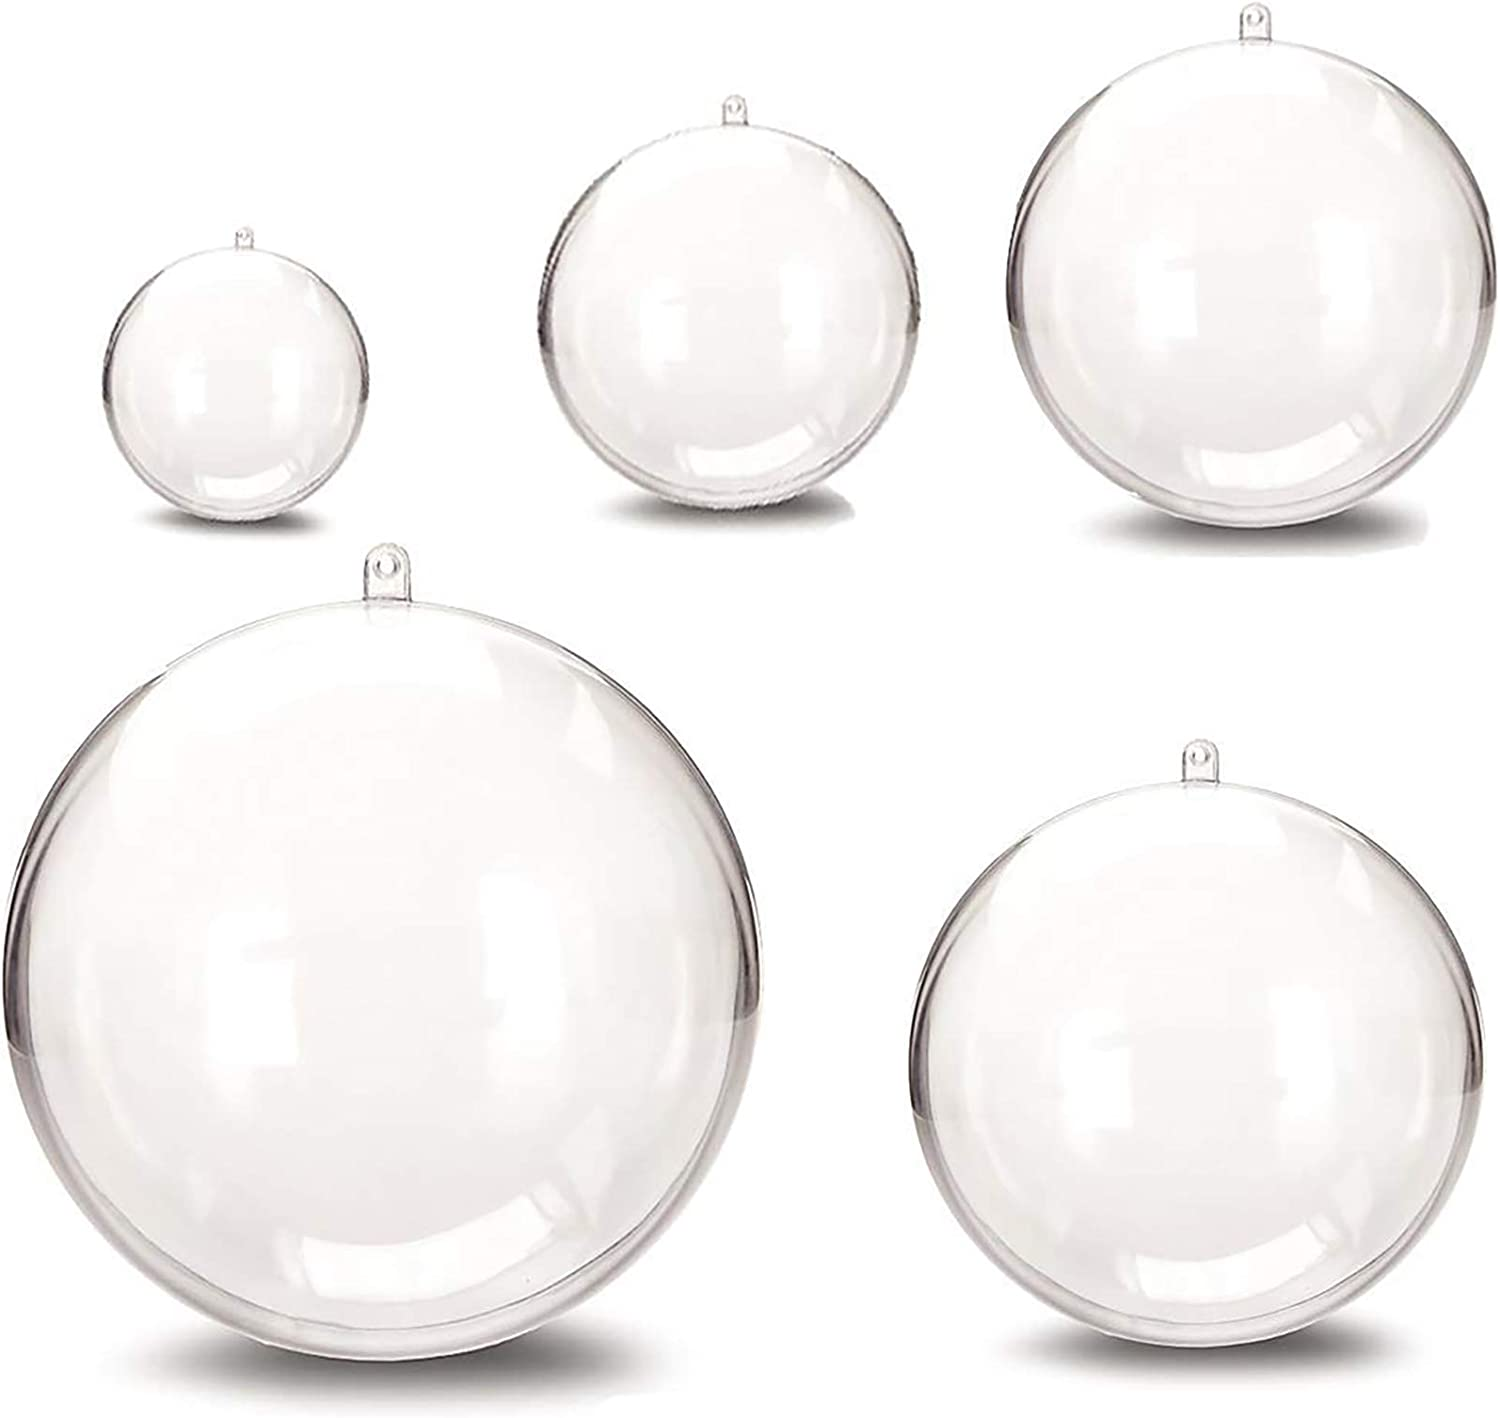 25 Pcs Christmas Ornament Balls Acrylic Clear , DIY Bath Bomb Mold, Bath Bomb molds, Craft Plastic Ball Ornament for Wedding Party Xmas Decor with 5 Size 1.18 inch,1.57 inch,1.96 inch, 2.36 inch